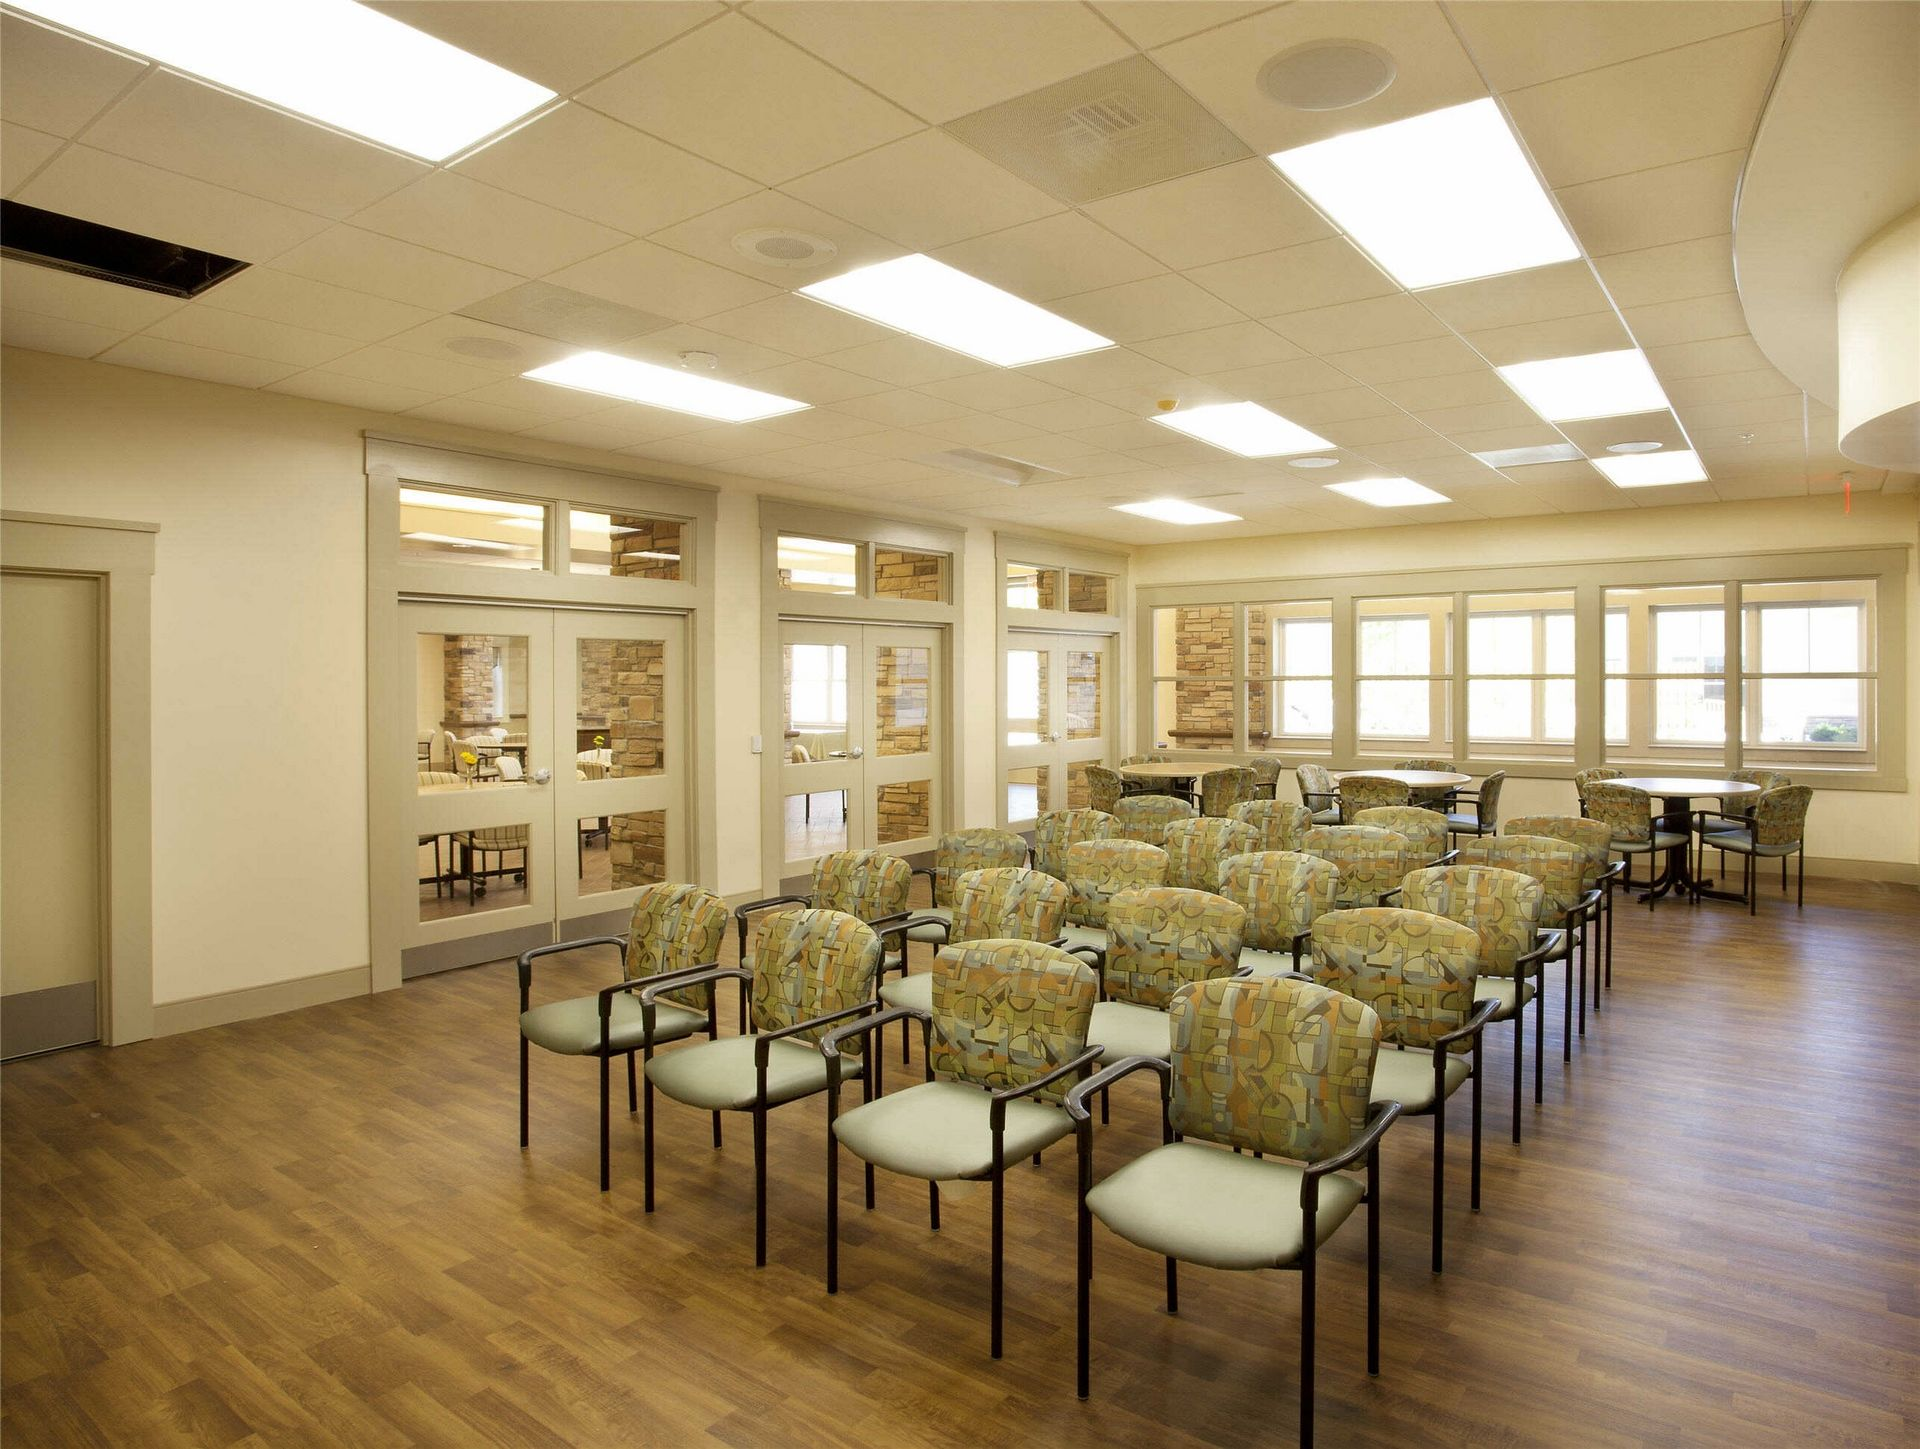 Kahl Home Skilled Nursing Design Gathering Room